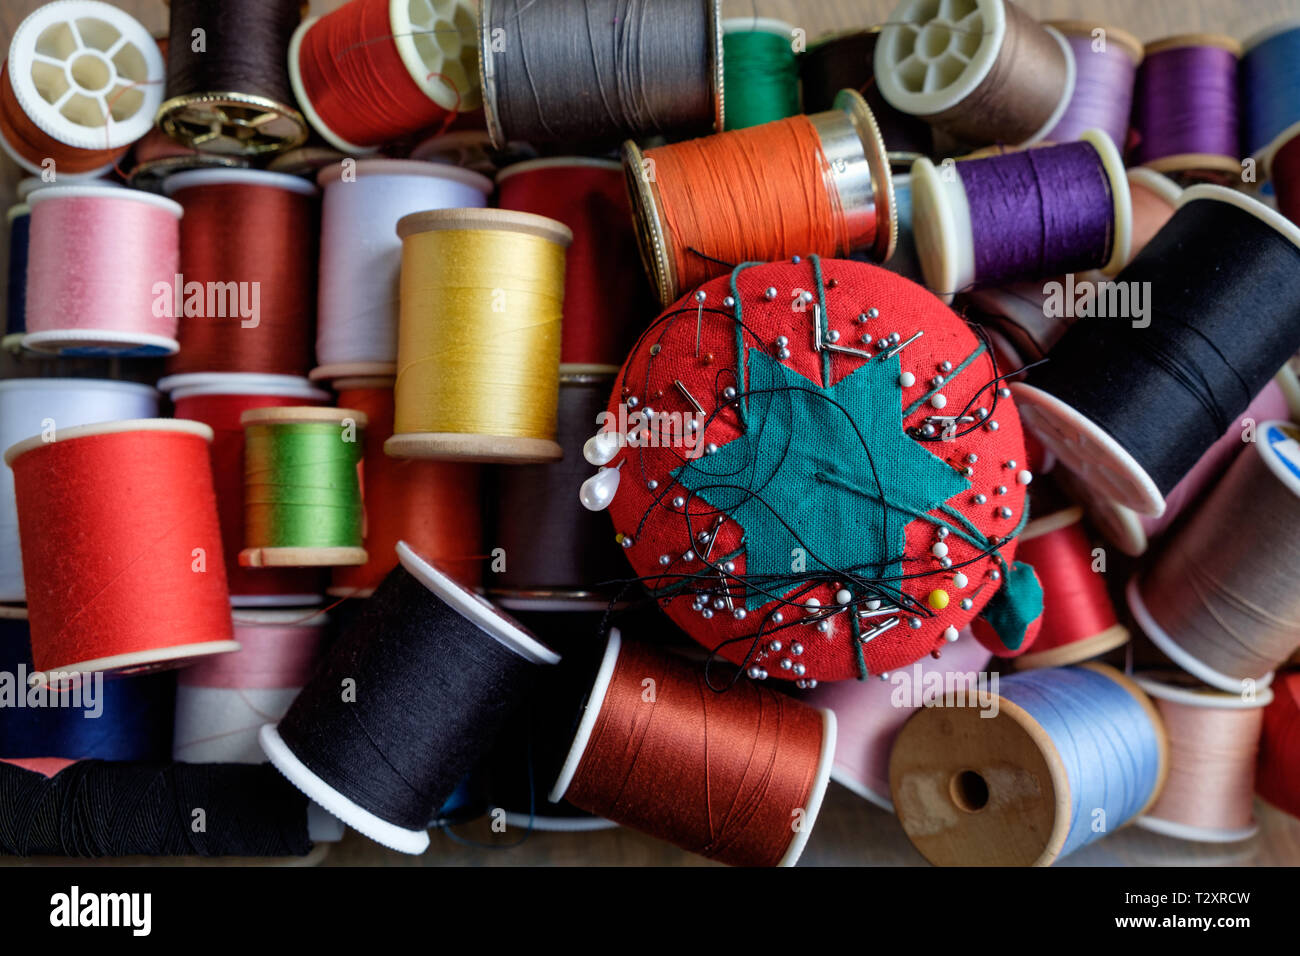 A tomato pin cushion with spools of colorful thread in a sewing kit. Stock Photo